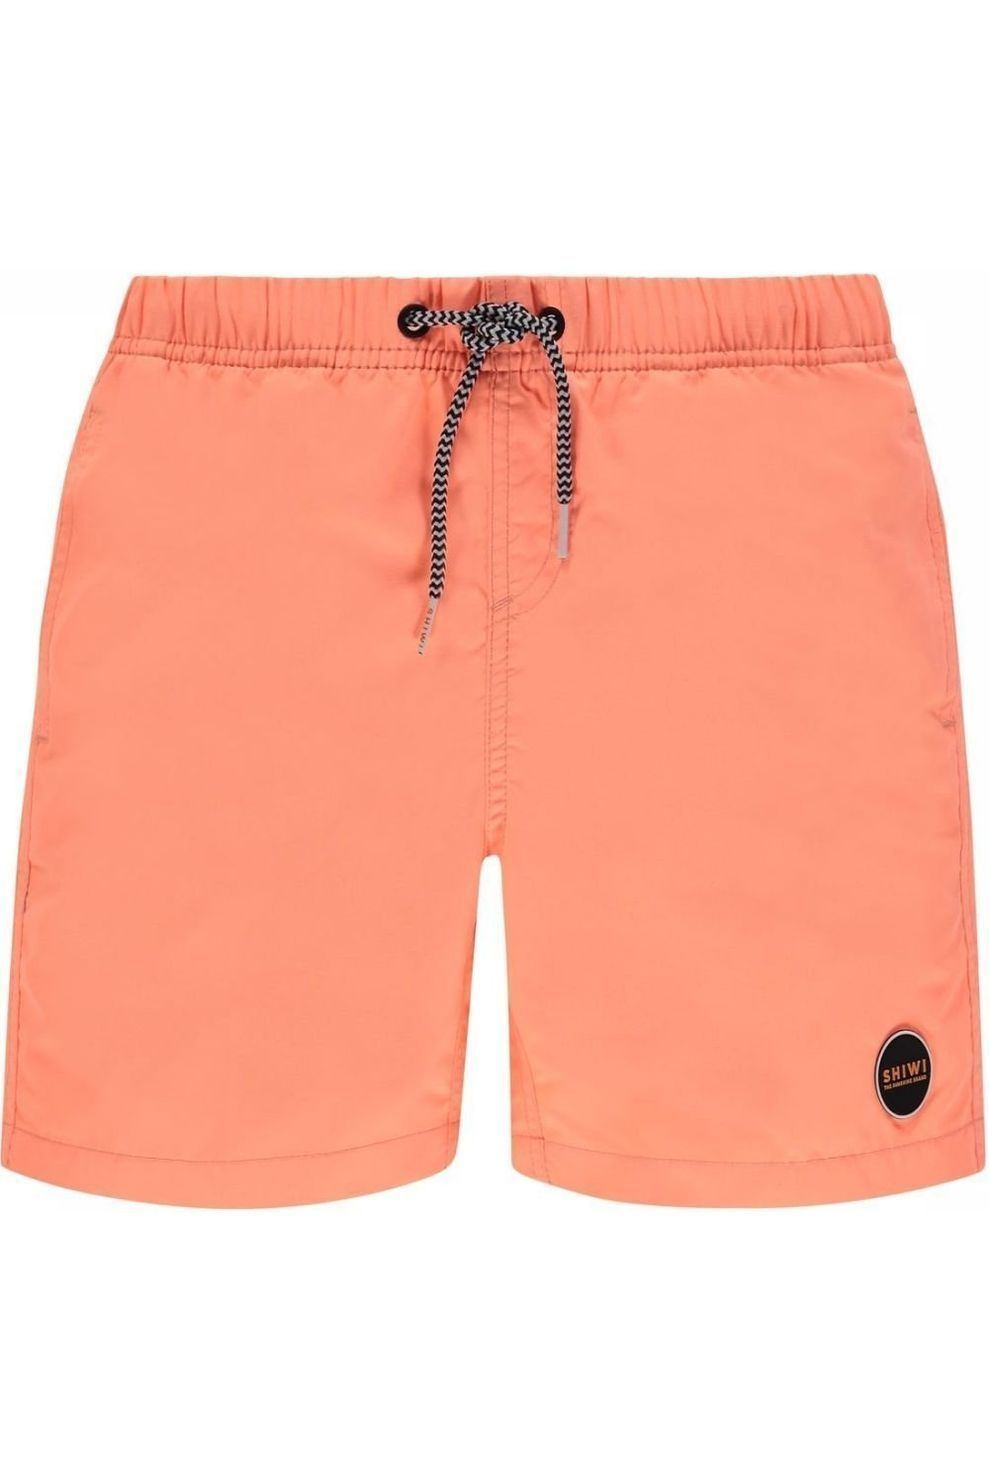 Shiwi Zwemshort Magic Palm Tree voor jongens - Oranje - Maat: 128